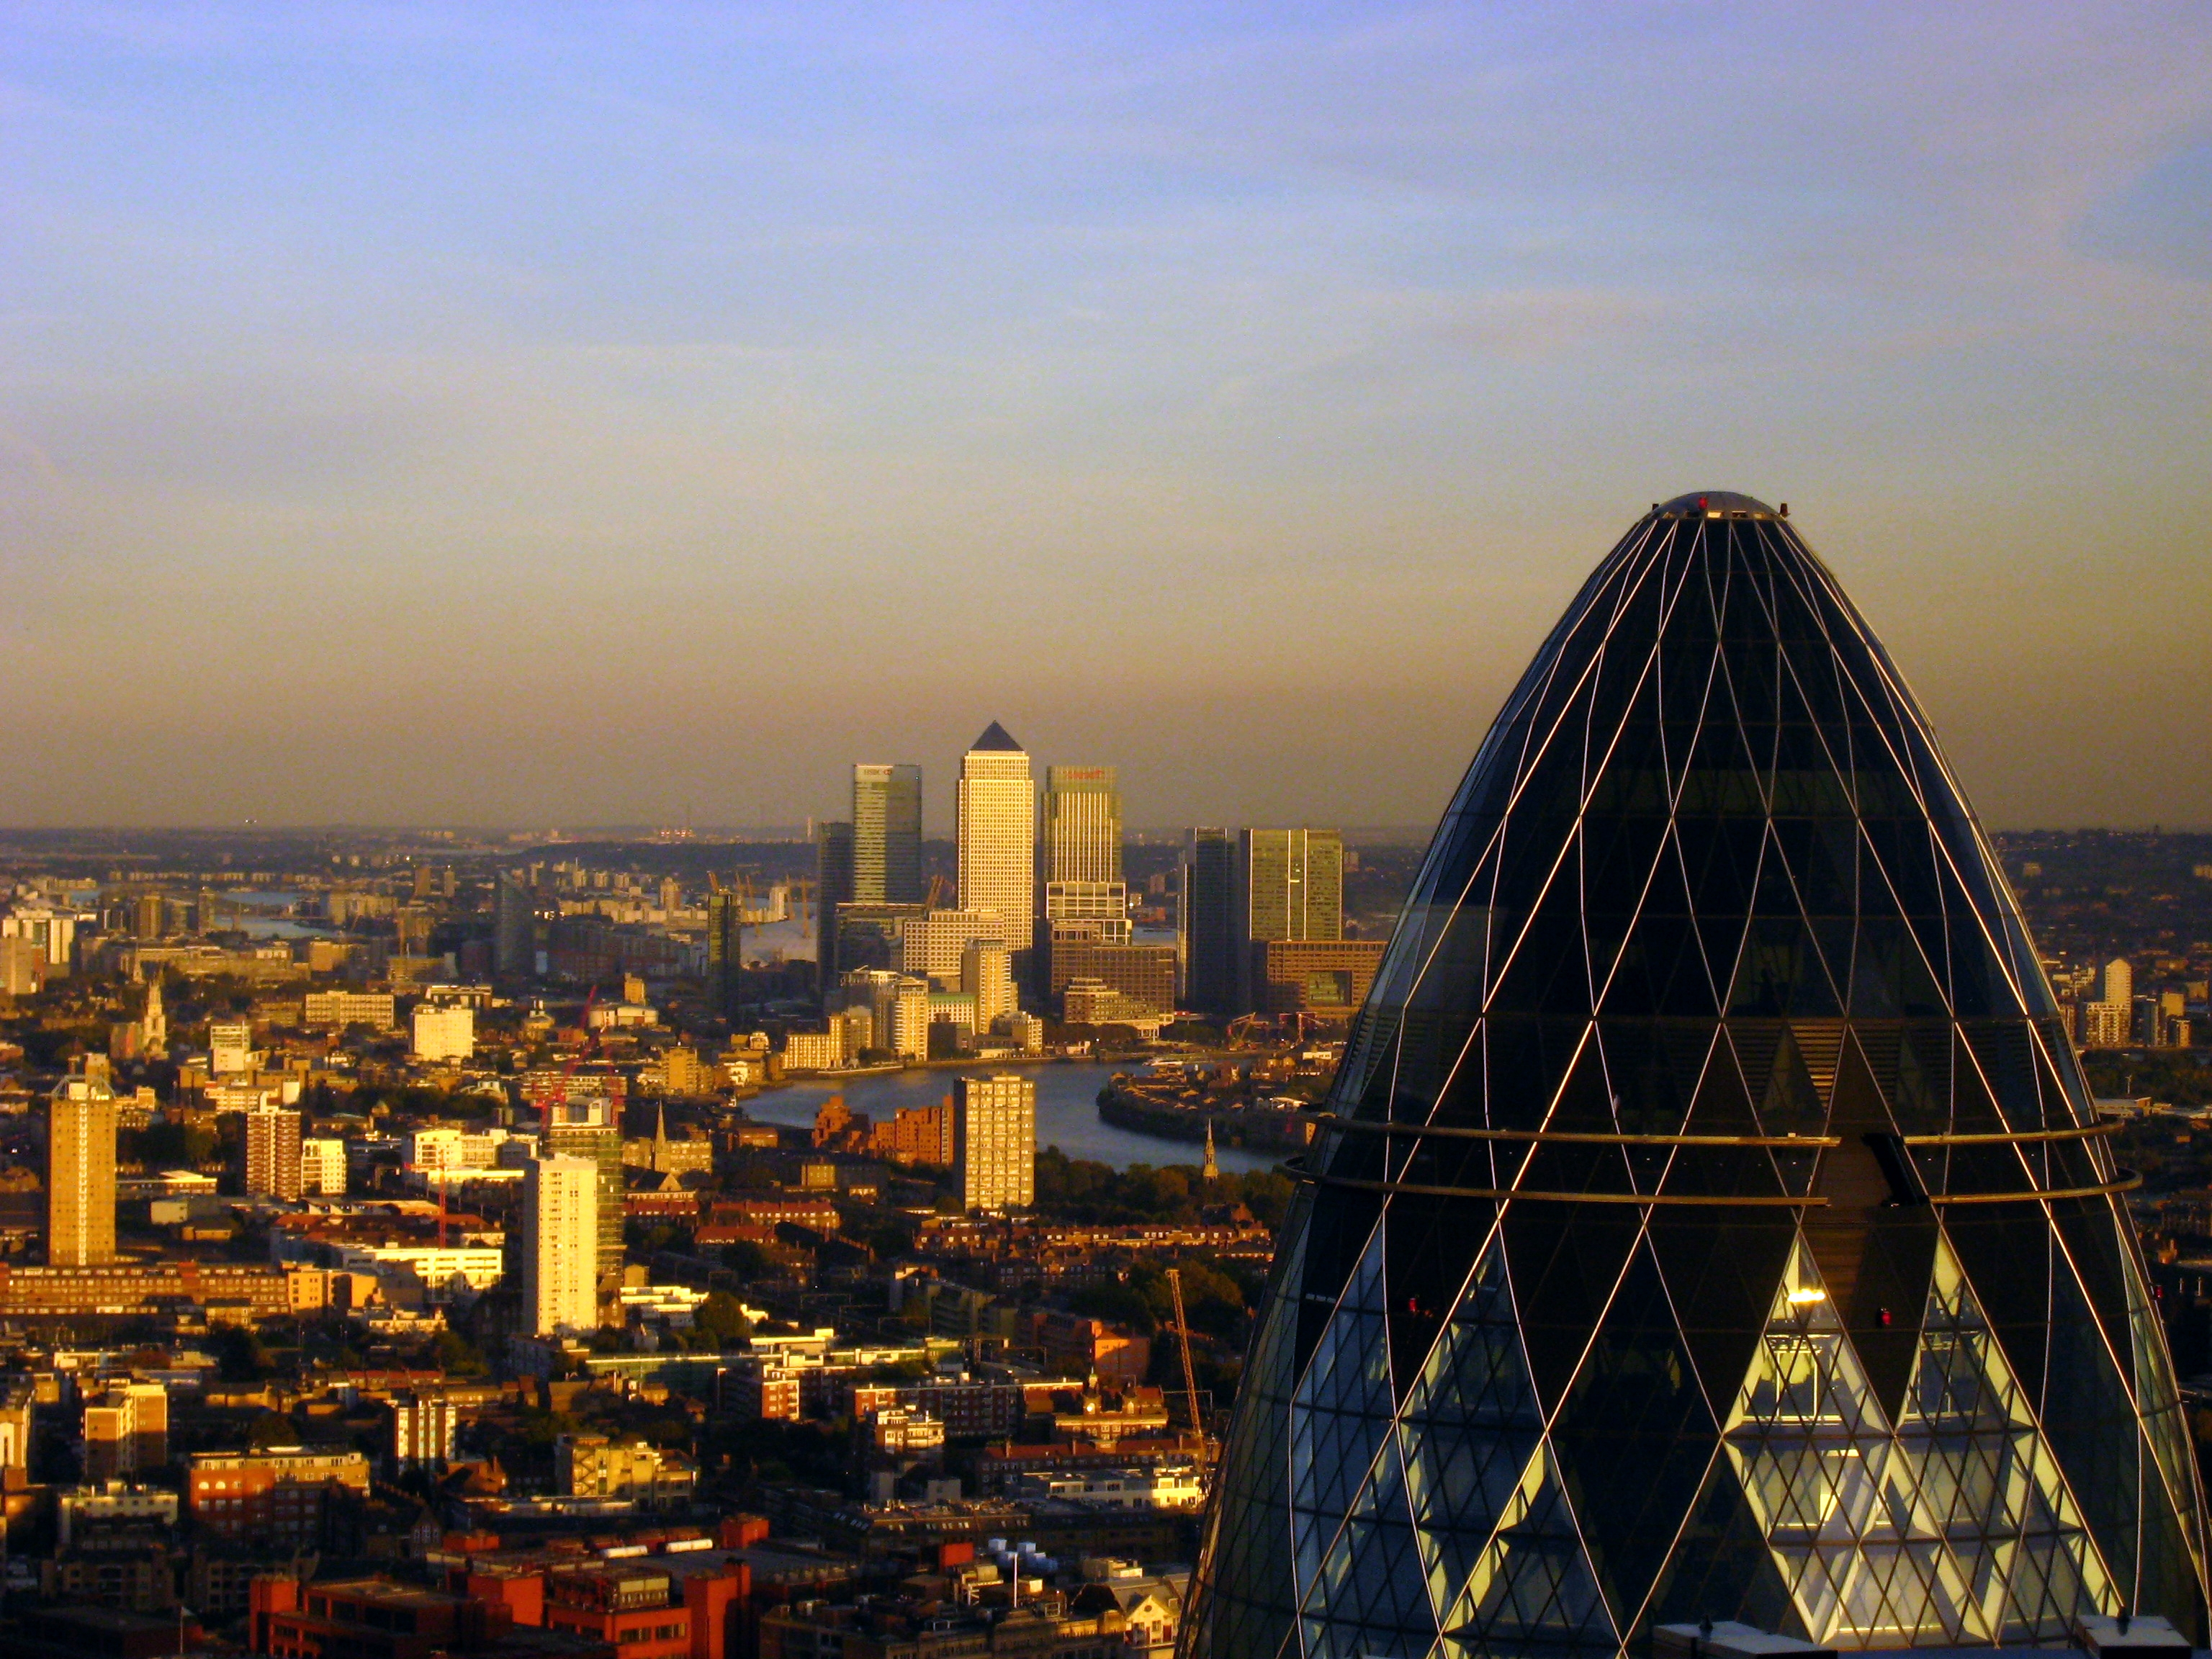 London_-_The_Gherkin_&_Canary_Wharf